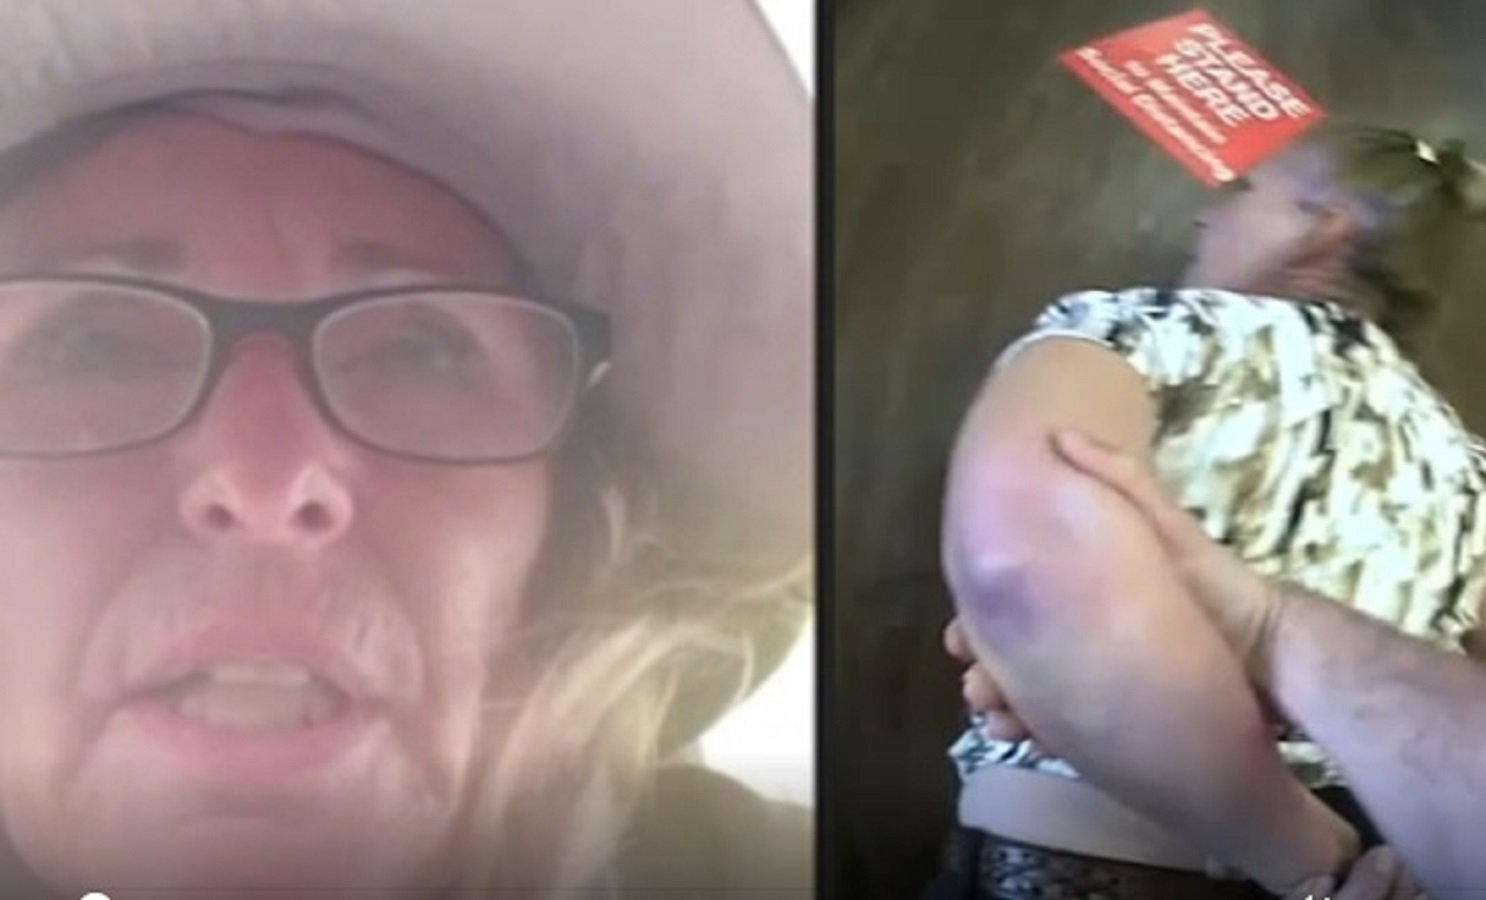 WATCH: 65-Year-Old Woman Violently Arrested in Texas Bank of America for Not Wearing Mask, Despite Mandate Being Lifted